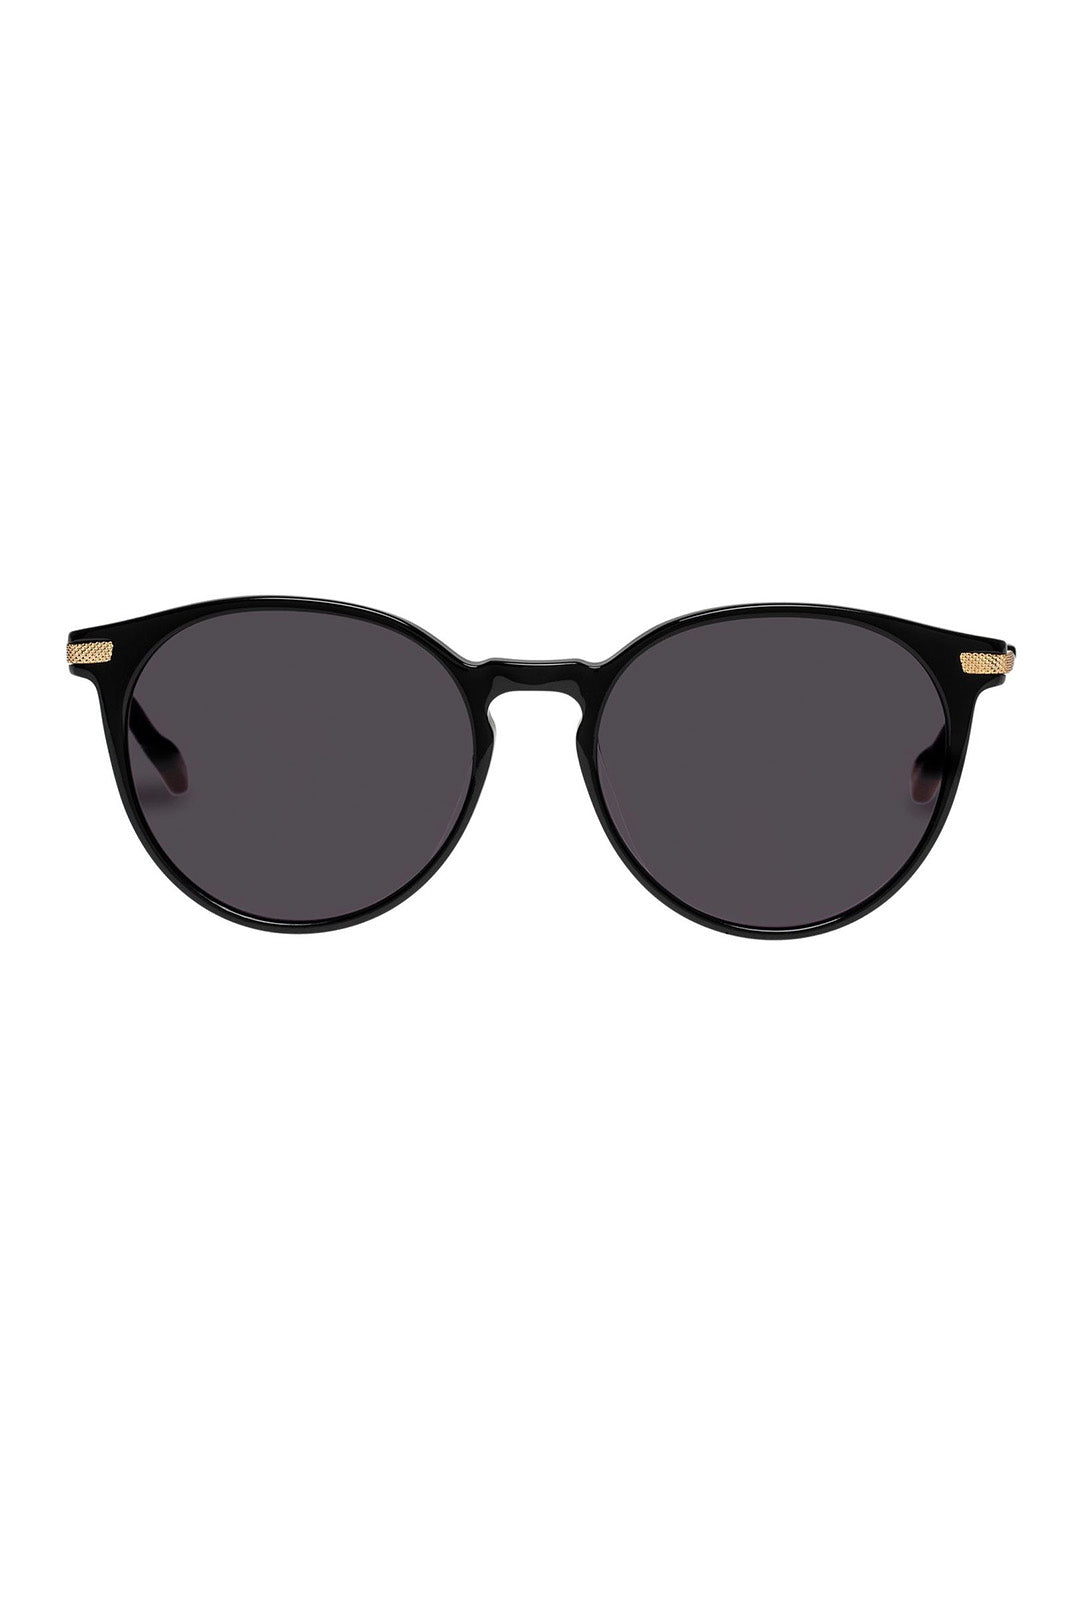 LE SPECS UFOLOGY BLACK GOLD/SMOKE